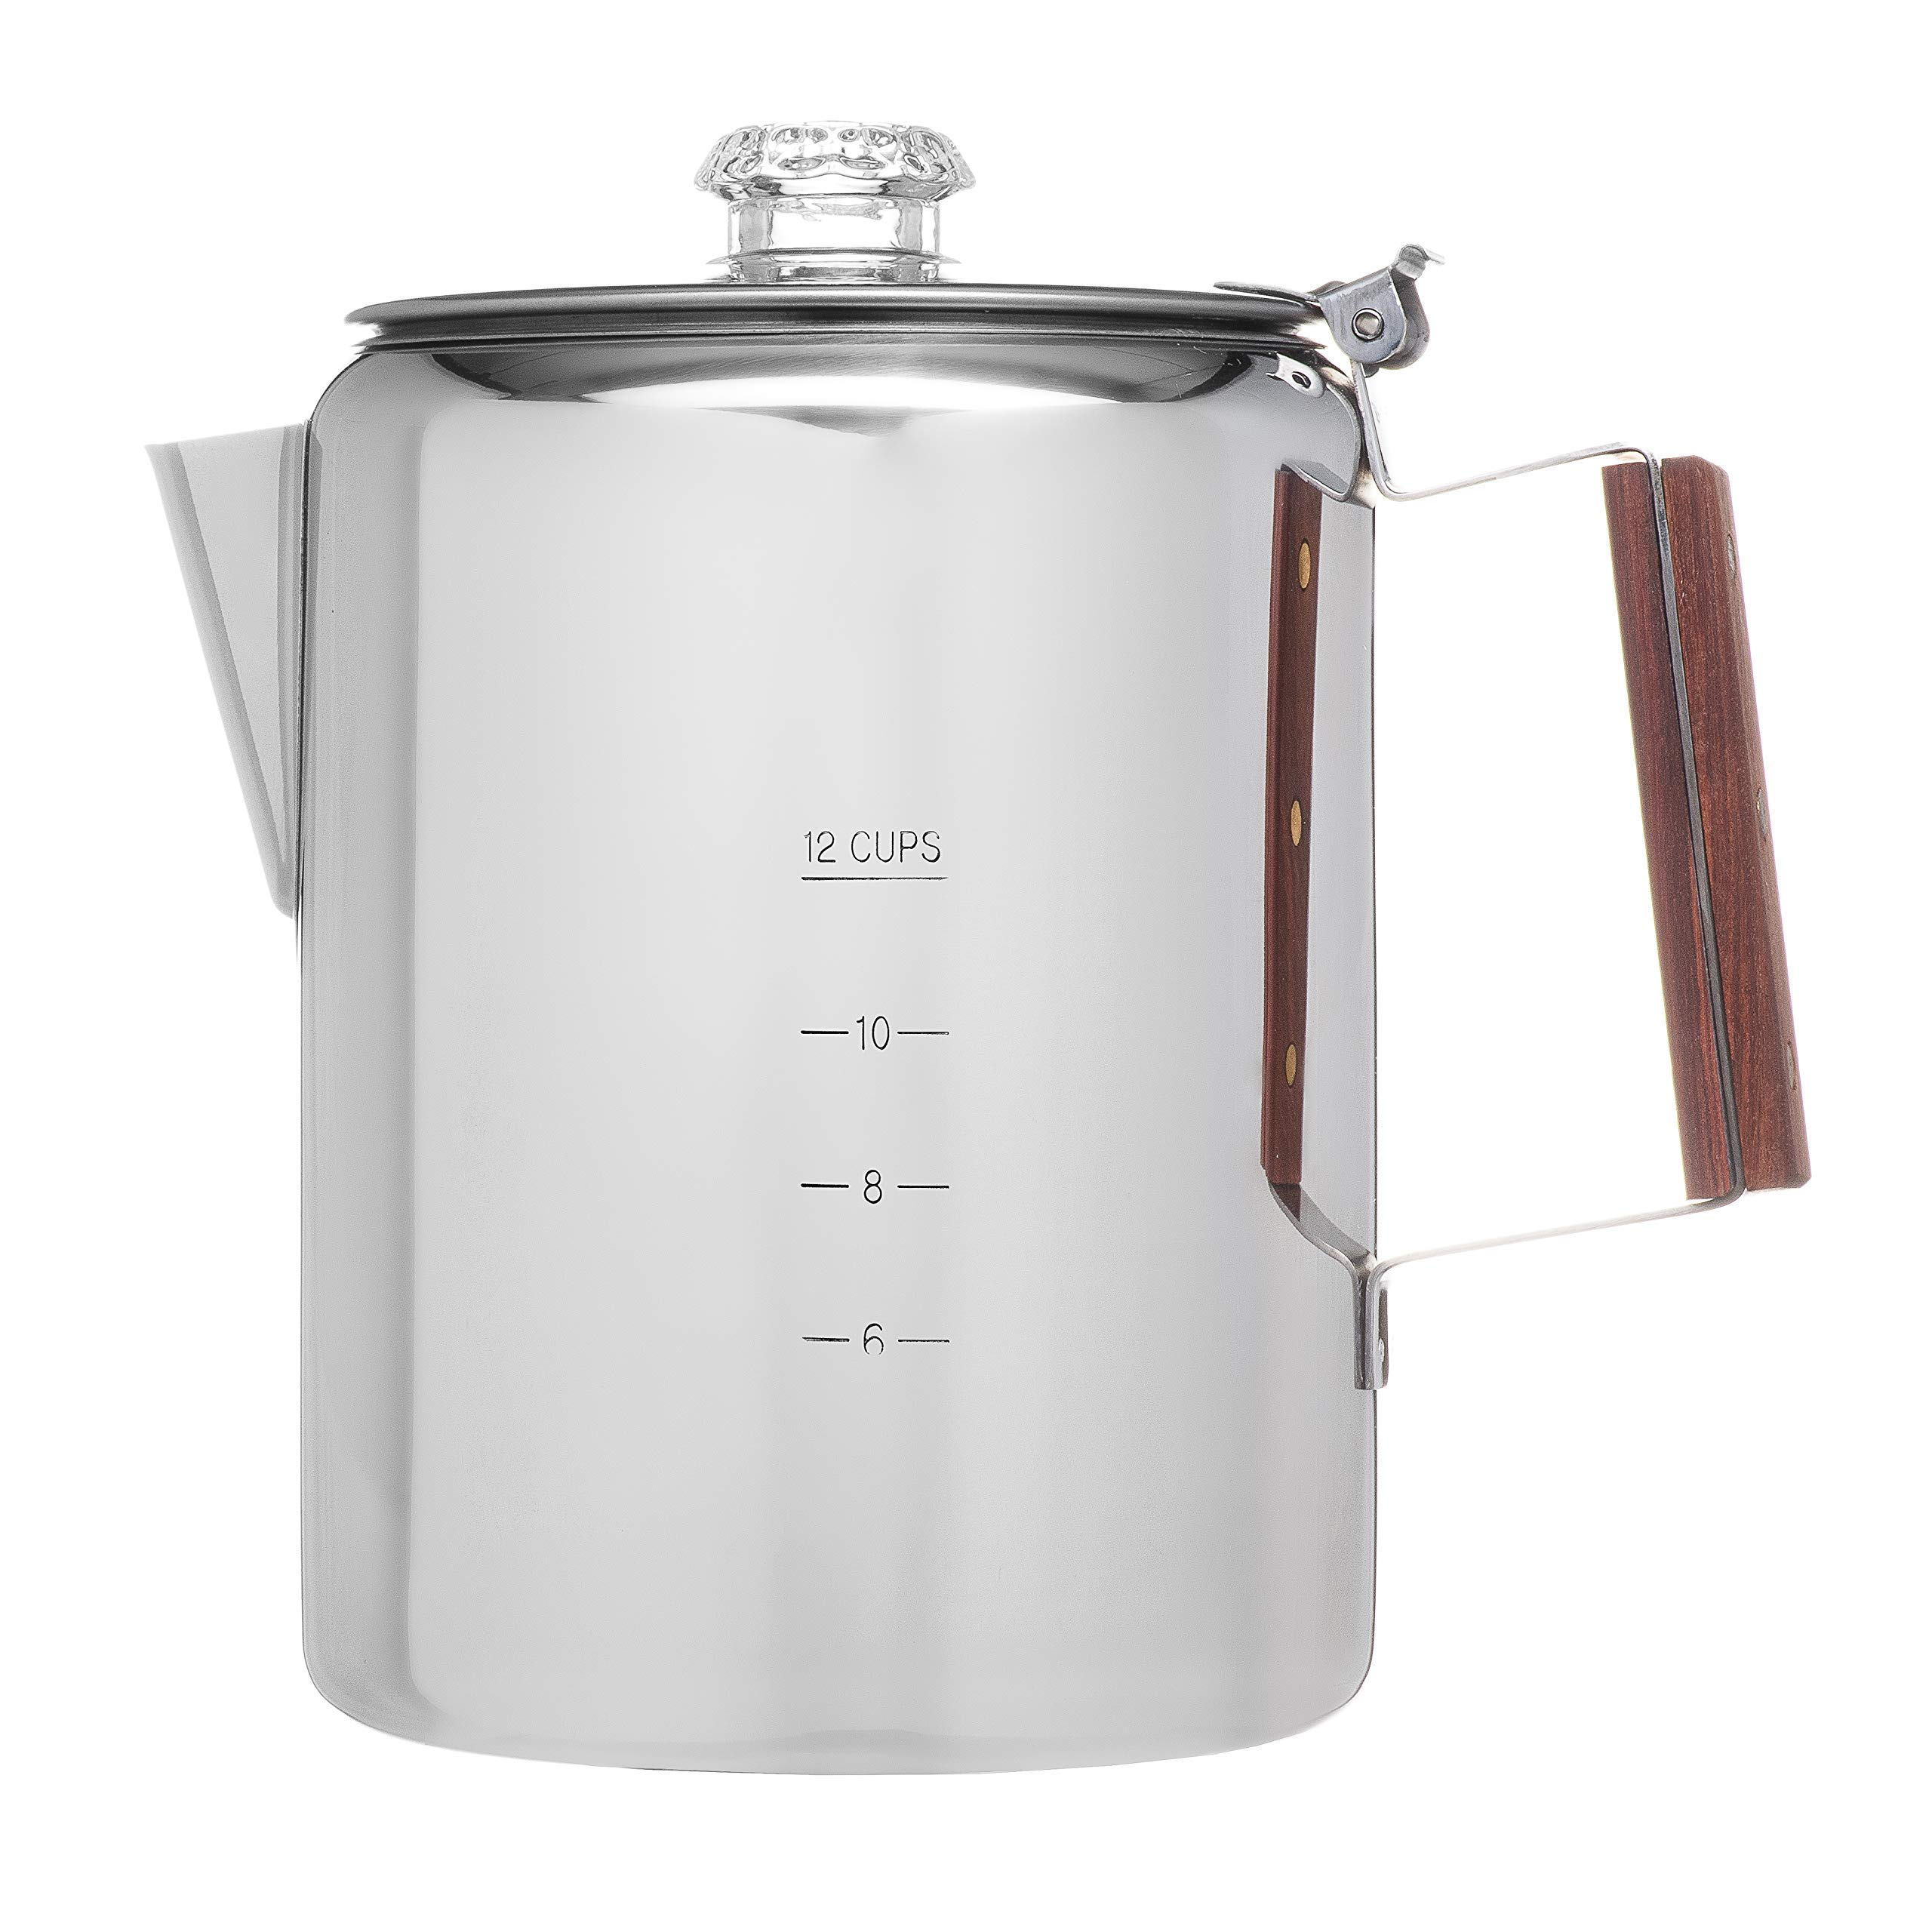 Coletti''Bozeman'' Percolator Coffee Pot - 12 CUP Stainless Steel (Renewed)